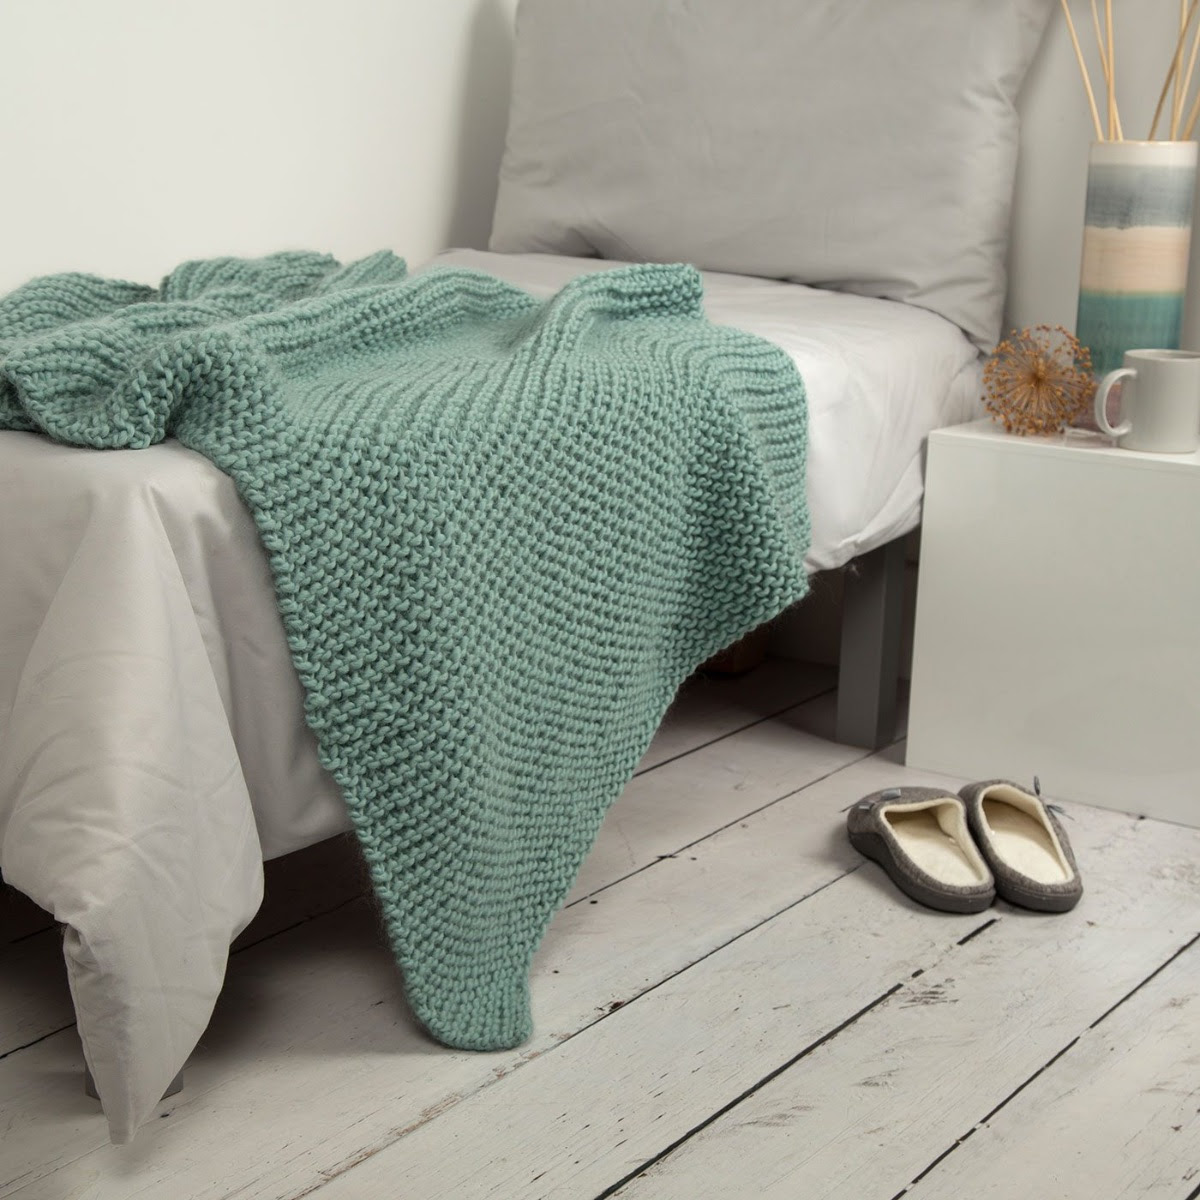 Wool Couture beginner's blanket with free gift